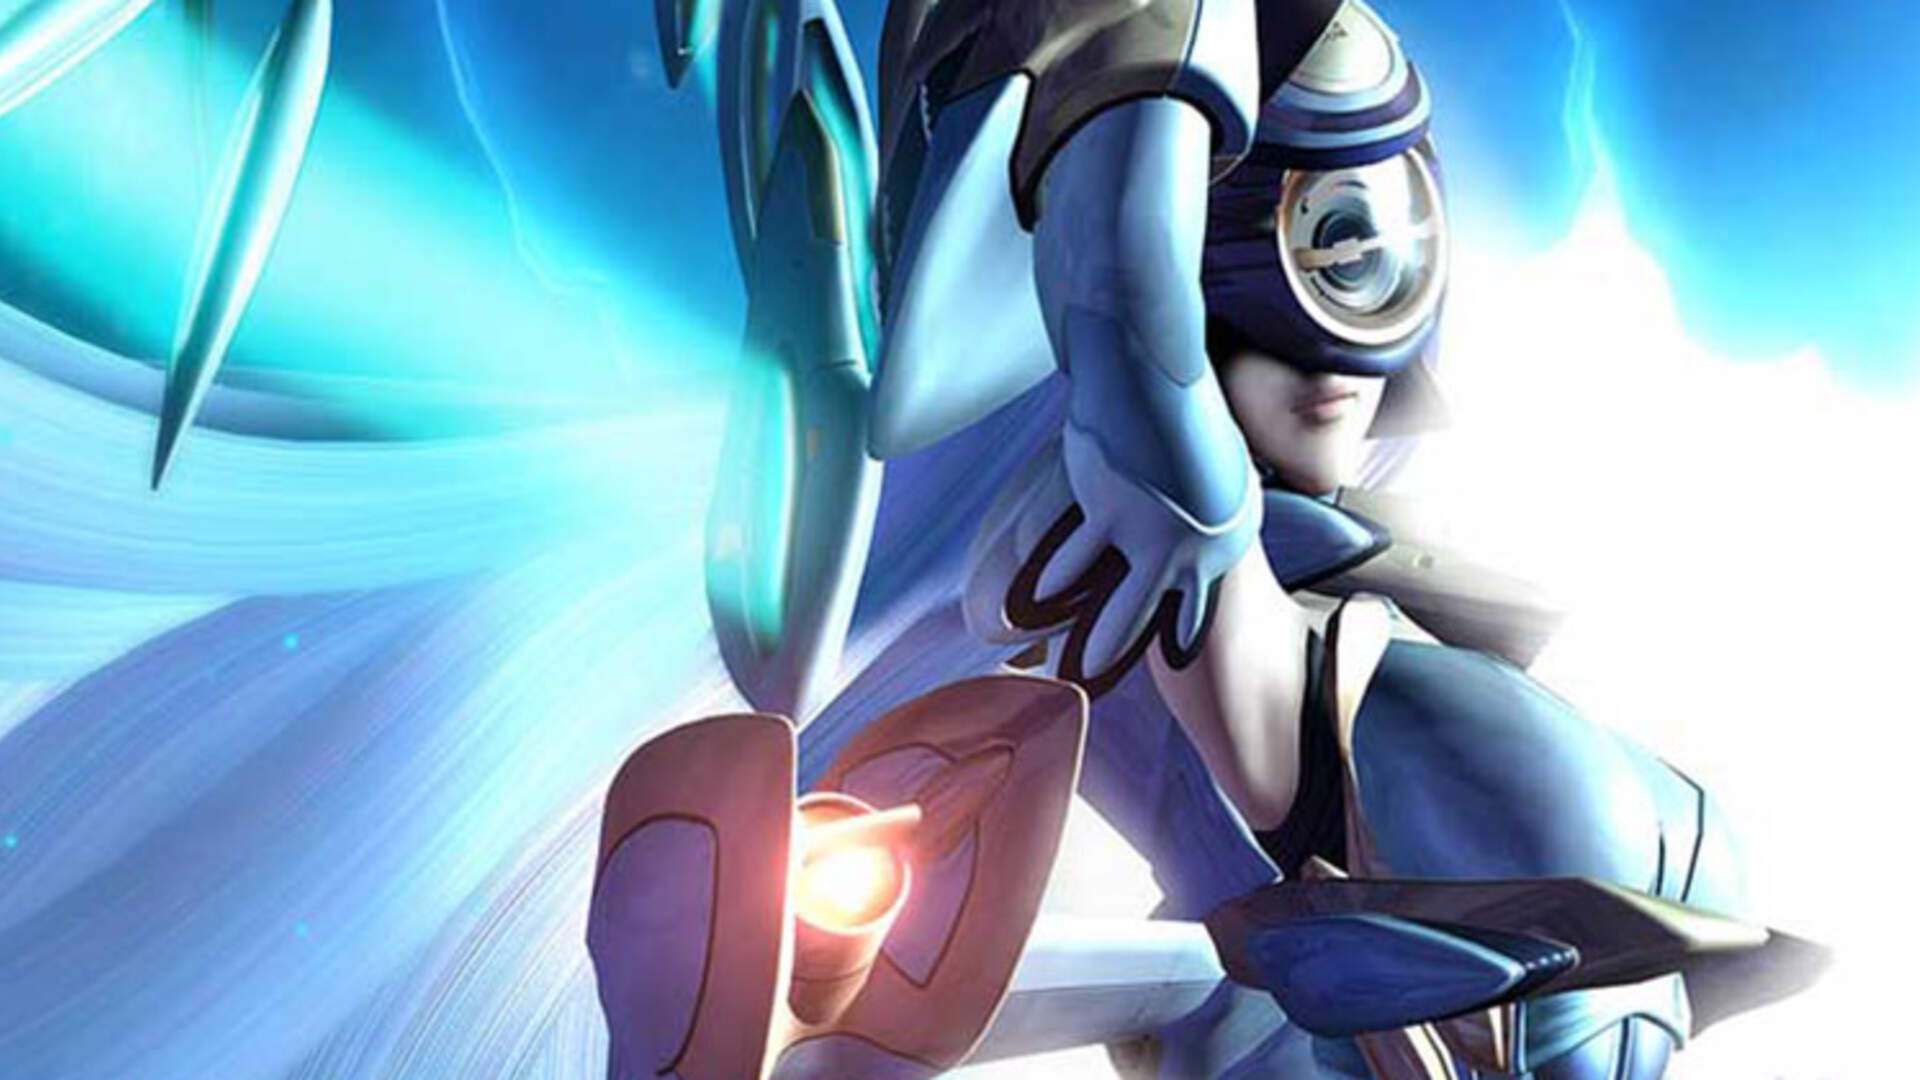 On This Day in Video Game History: The End Of Xenosaga